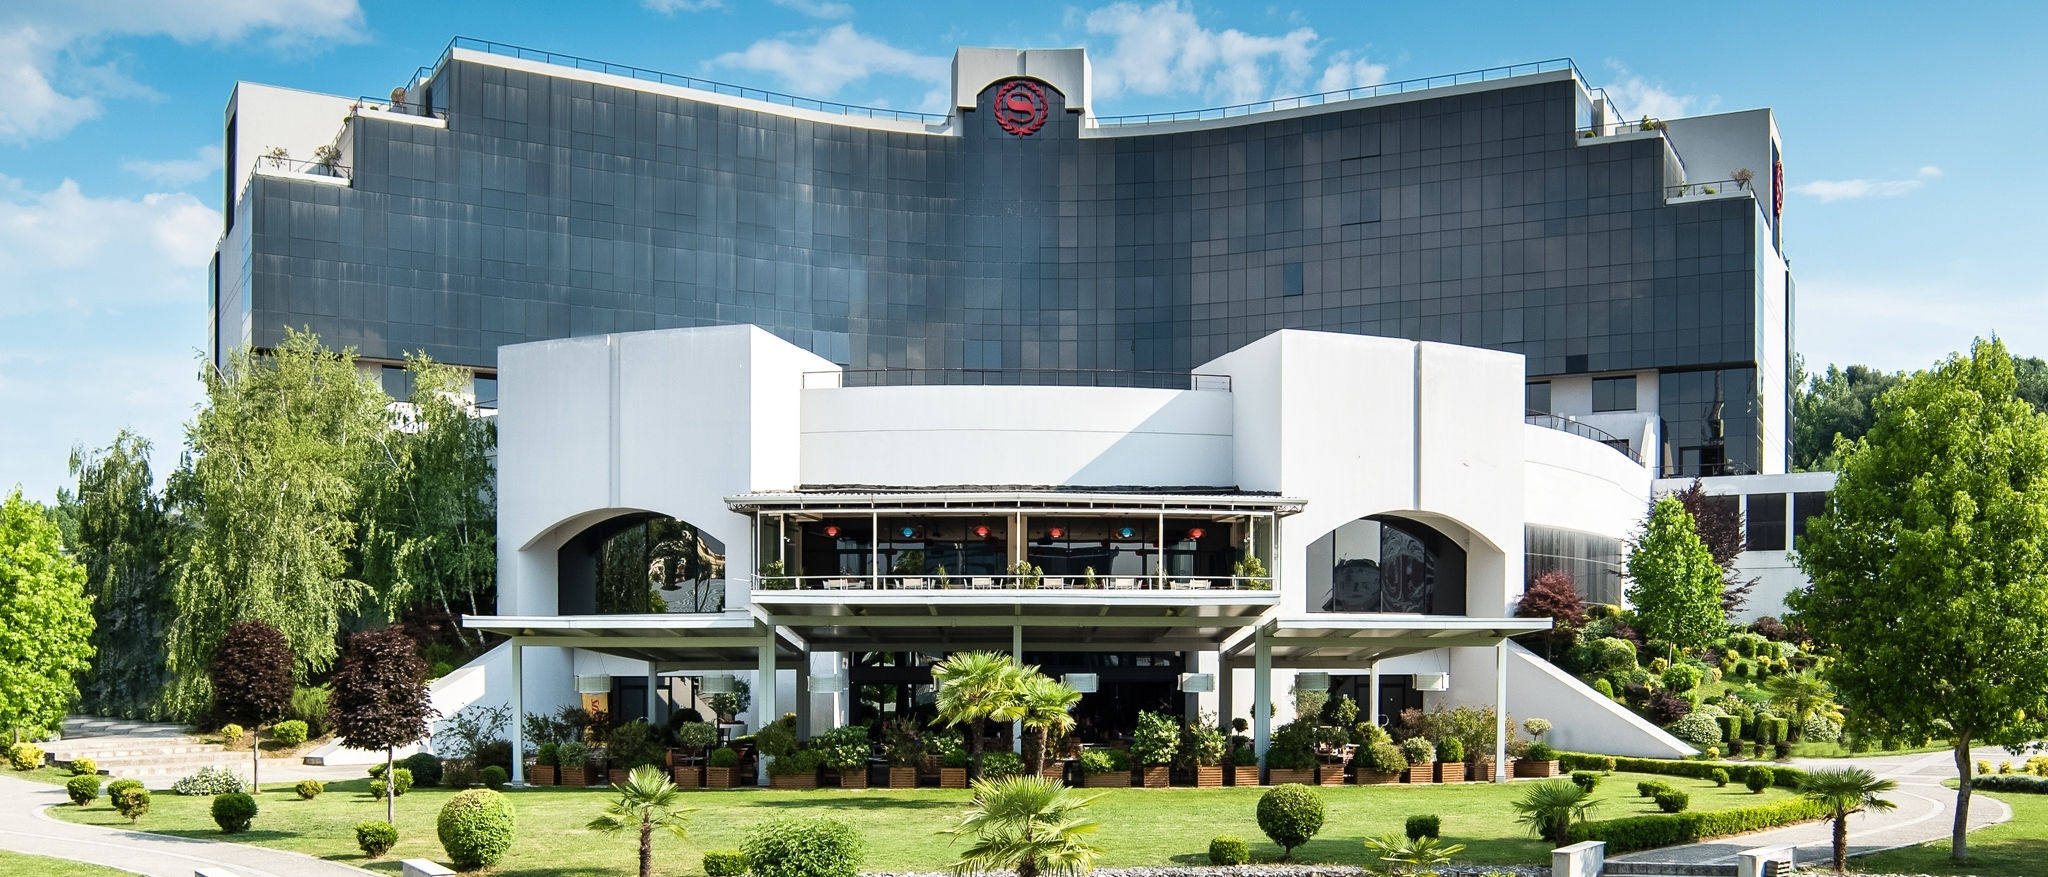 Exterior of Sheraton Tirana Hotel located in the heart of Tirana in Albania